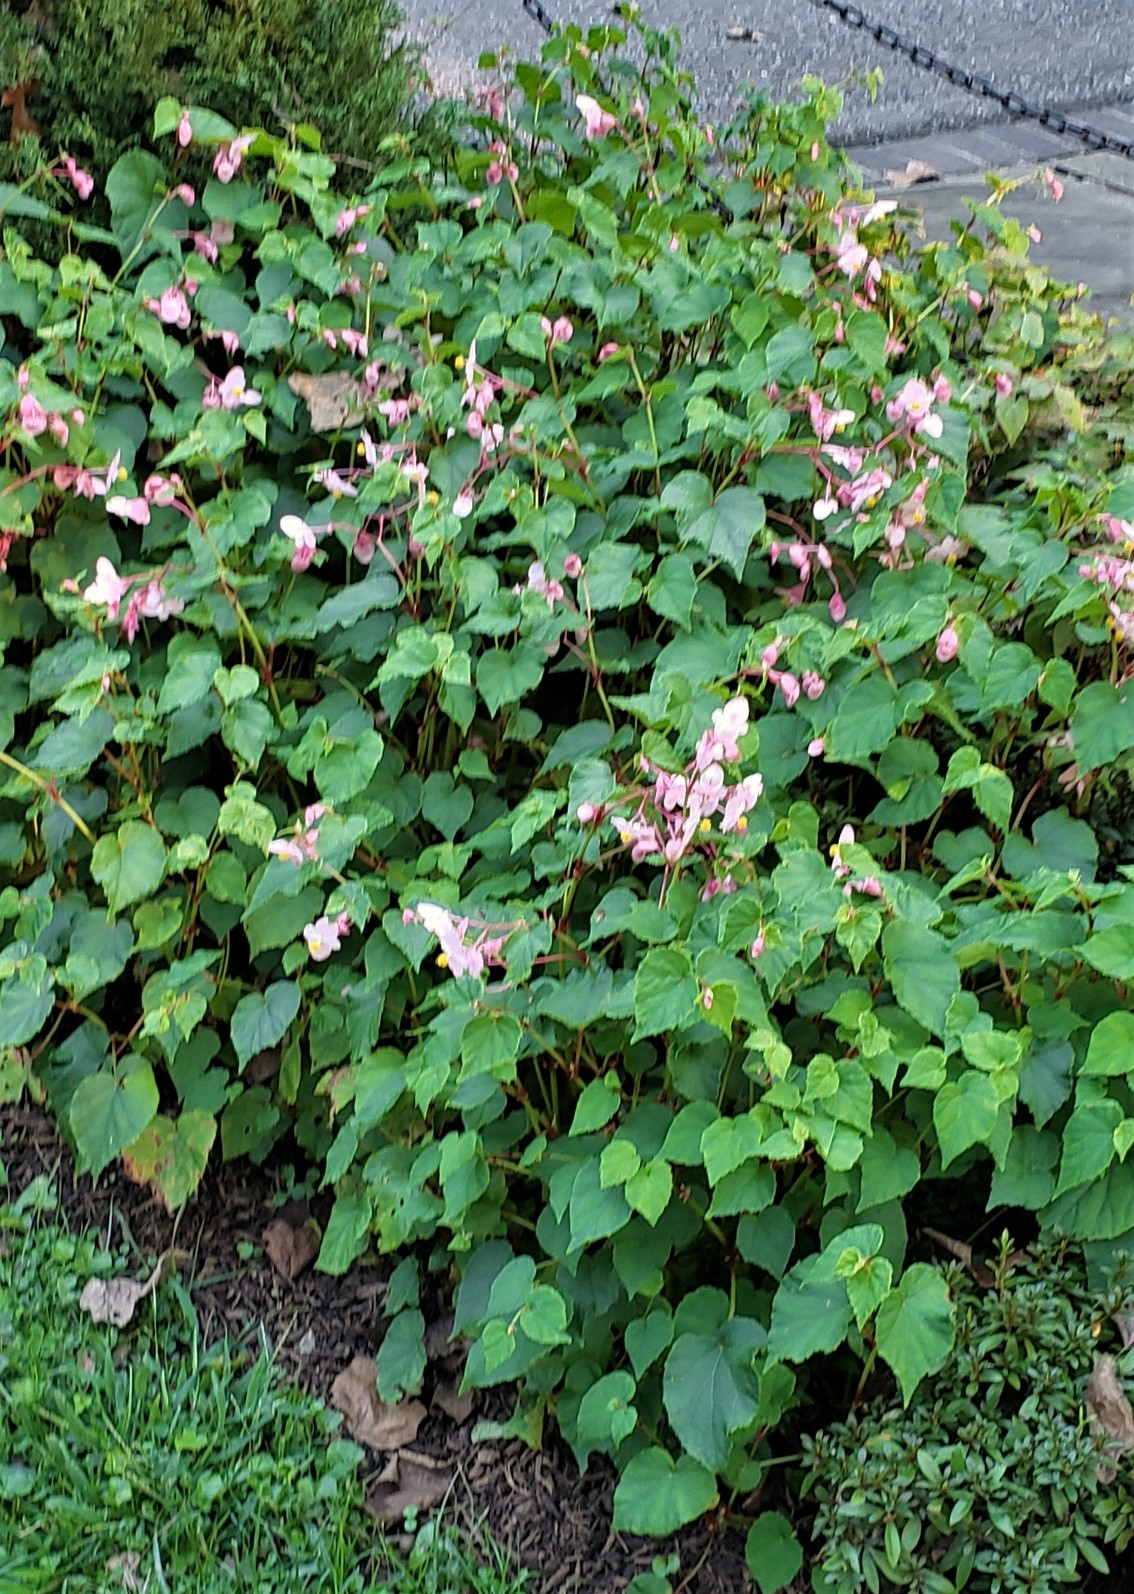 Hardy begonia, Begonia grandis, is a perennial that  brings fall color to beds and borders